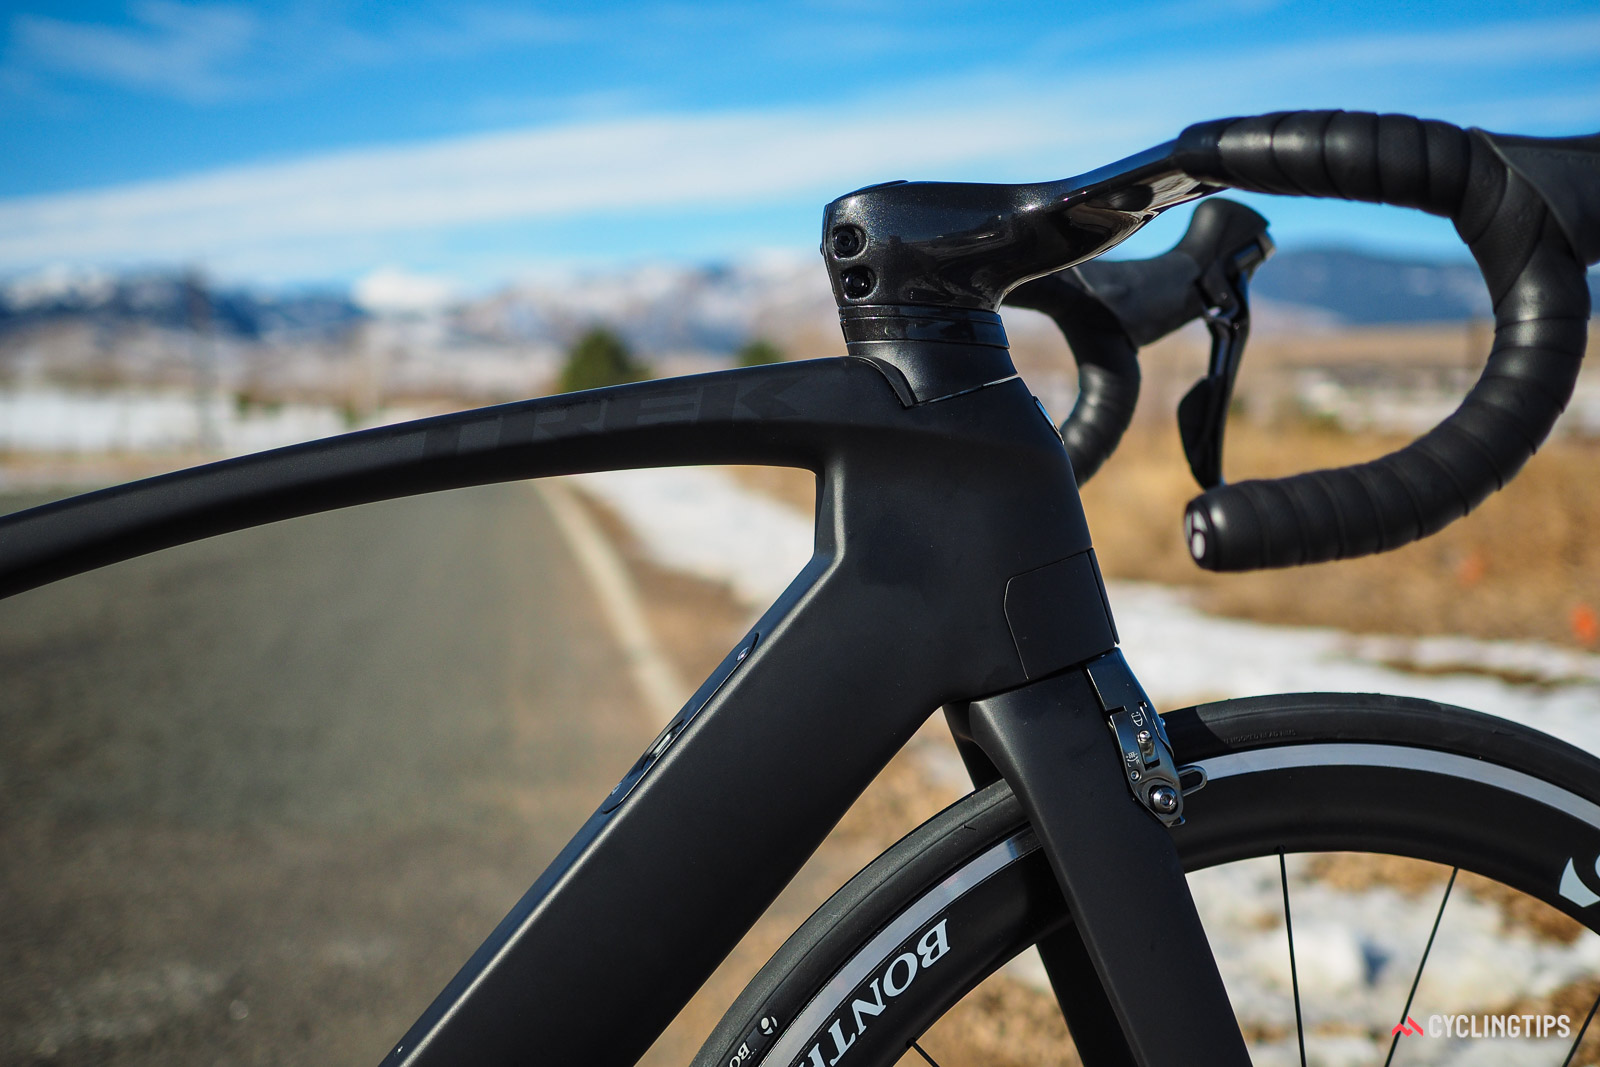 Trek Madone internal cable routing